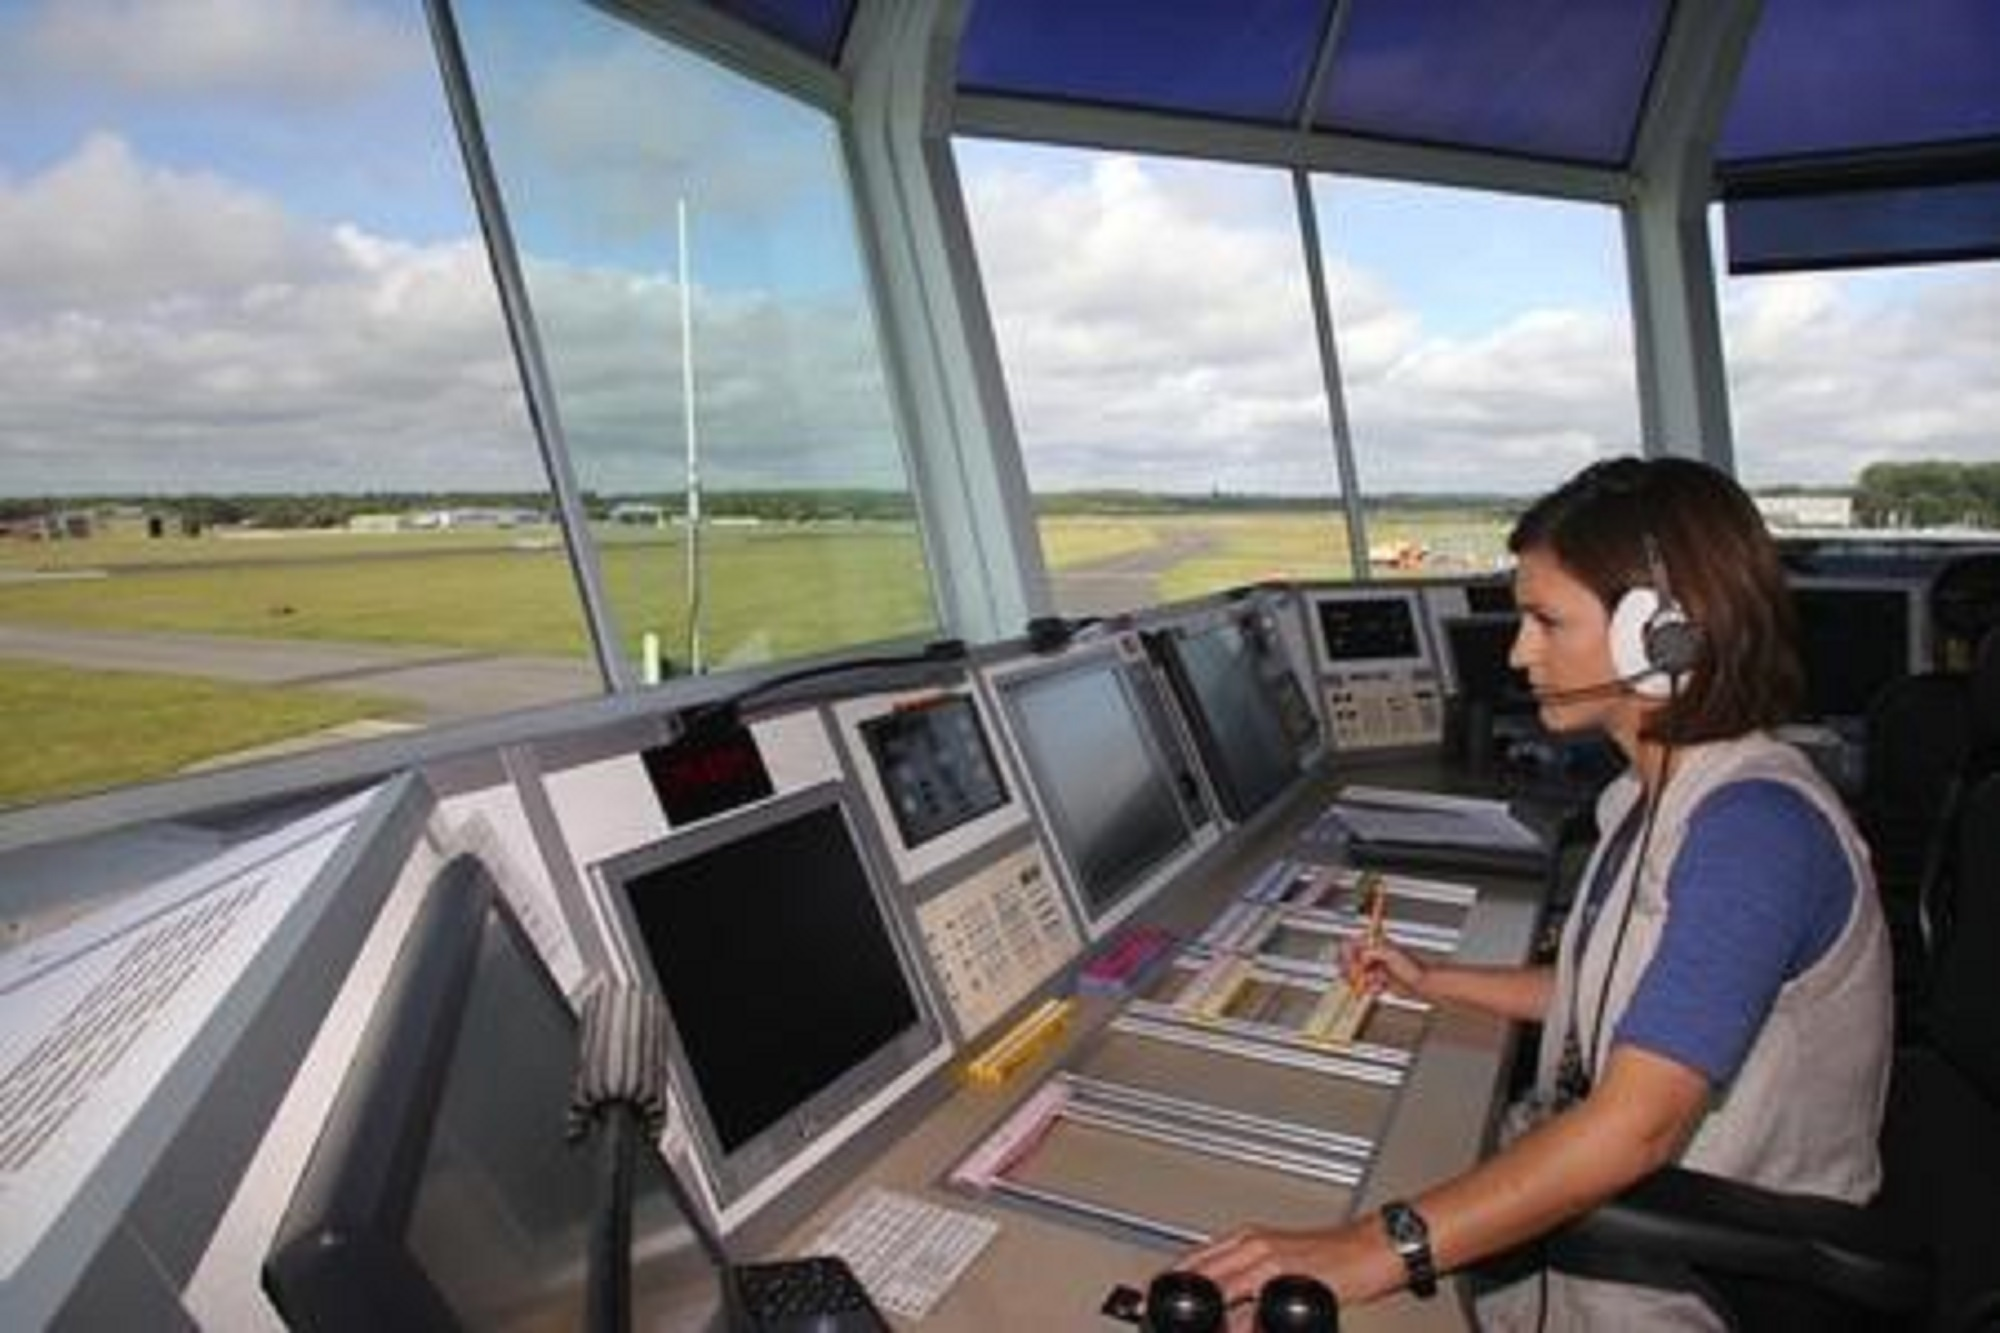 'No wonder Shetland want self-rule' - Moves to block cuts to Scots air traffic control over safety fears and soaring costs